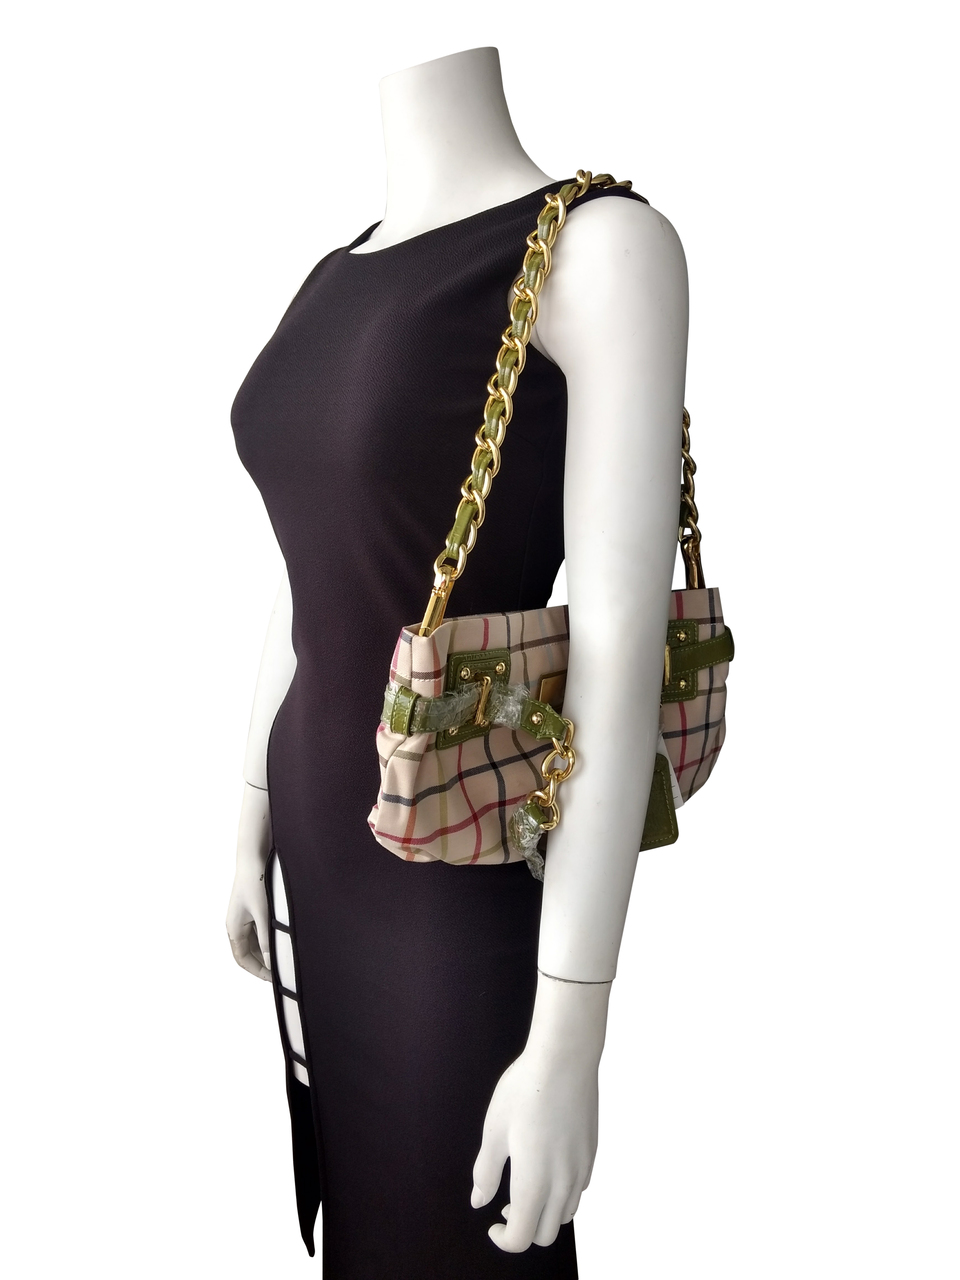 High Quality, Large Plaid Purse. Plaid with Green.